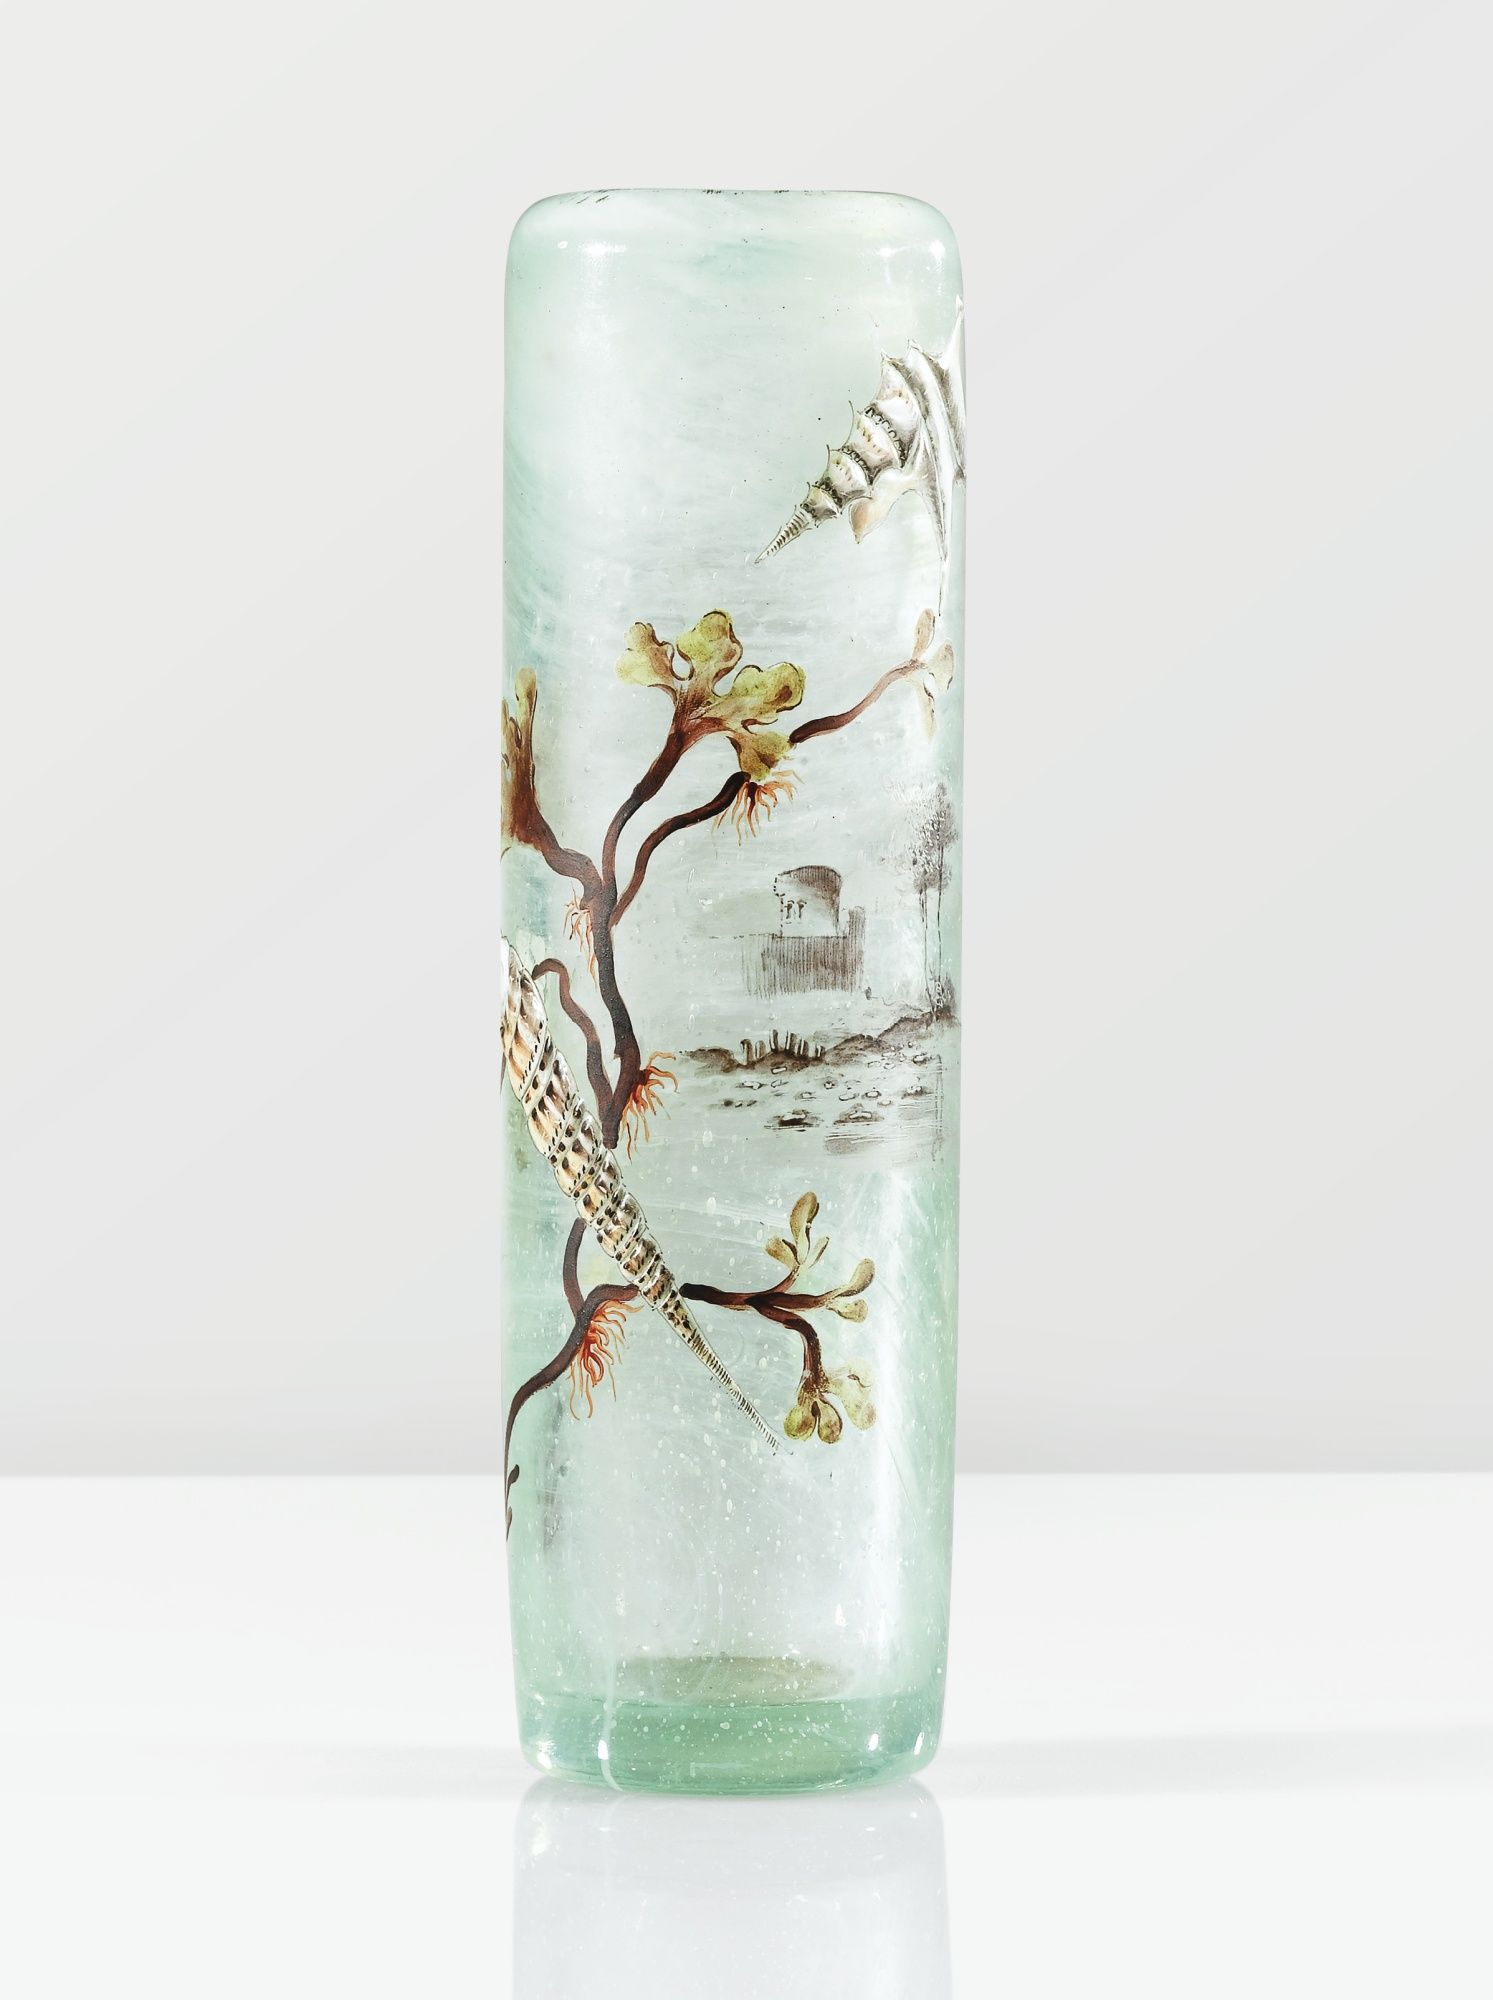 AN INTERNALLY DECORATED MOULD BLOWN ART-GLASS VASE WITH ENAMELLED AND PARTIALLY GILT DESIGN BY EMILE GALLÉ, CIRCA 1878-1884. SIGNED ♥≻★≺♥